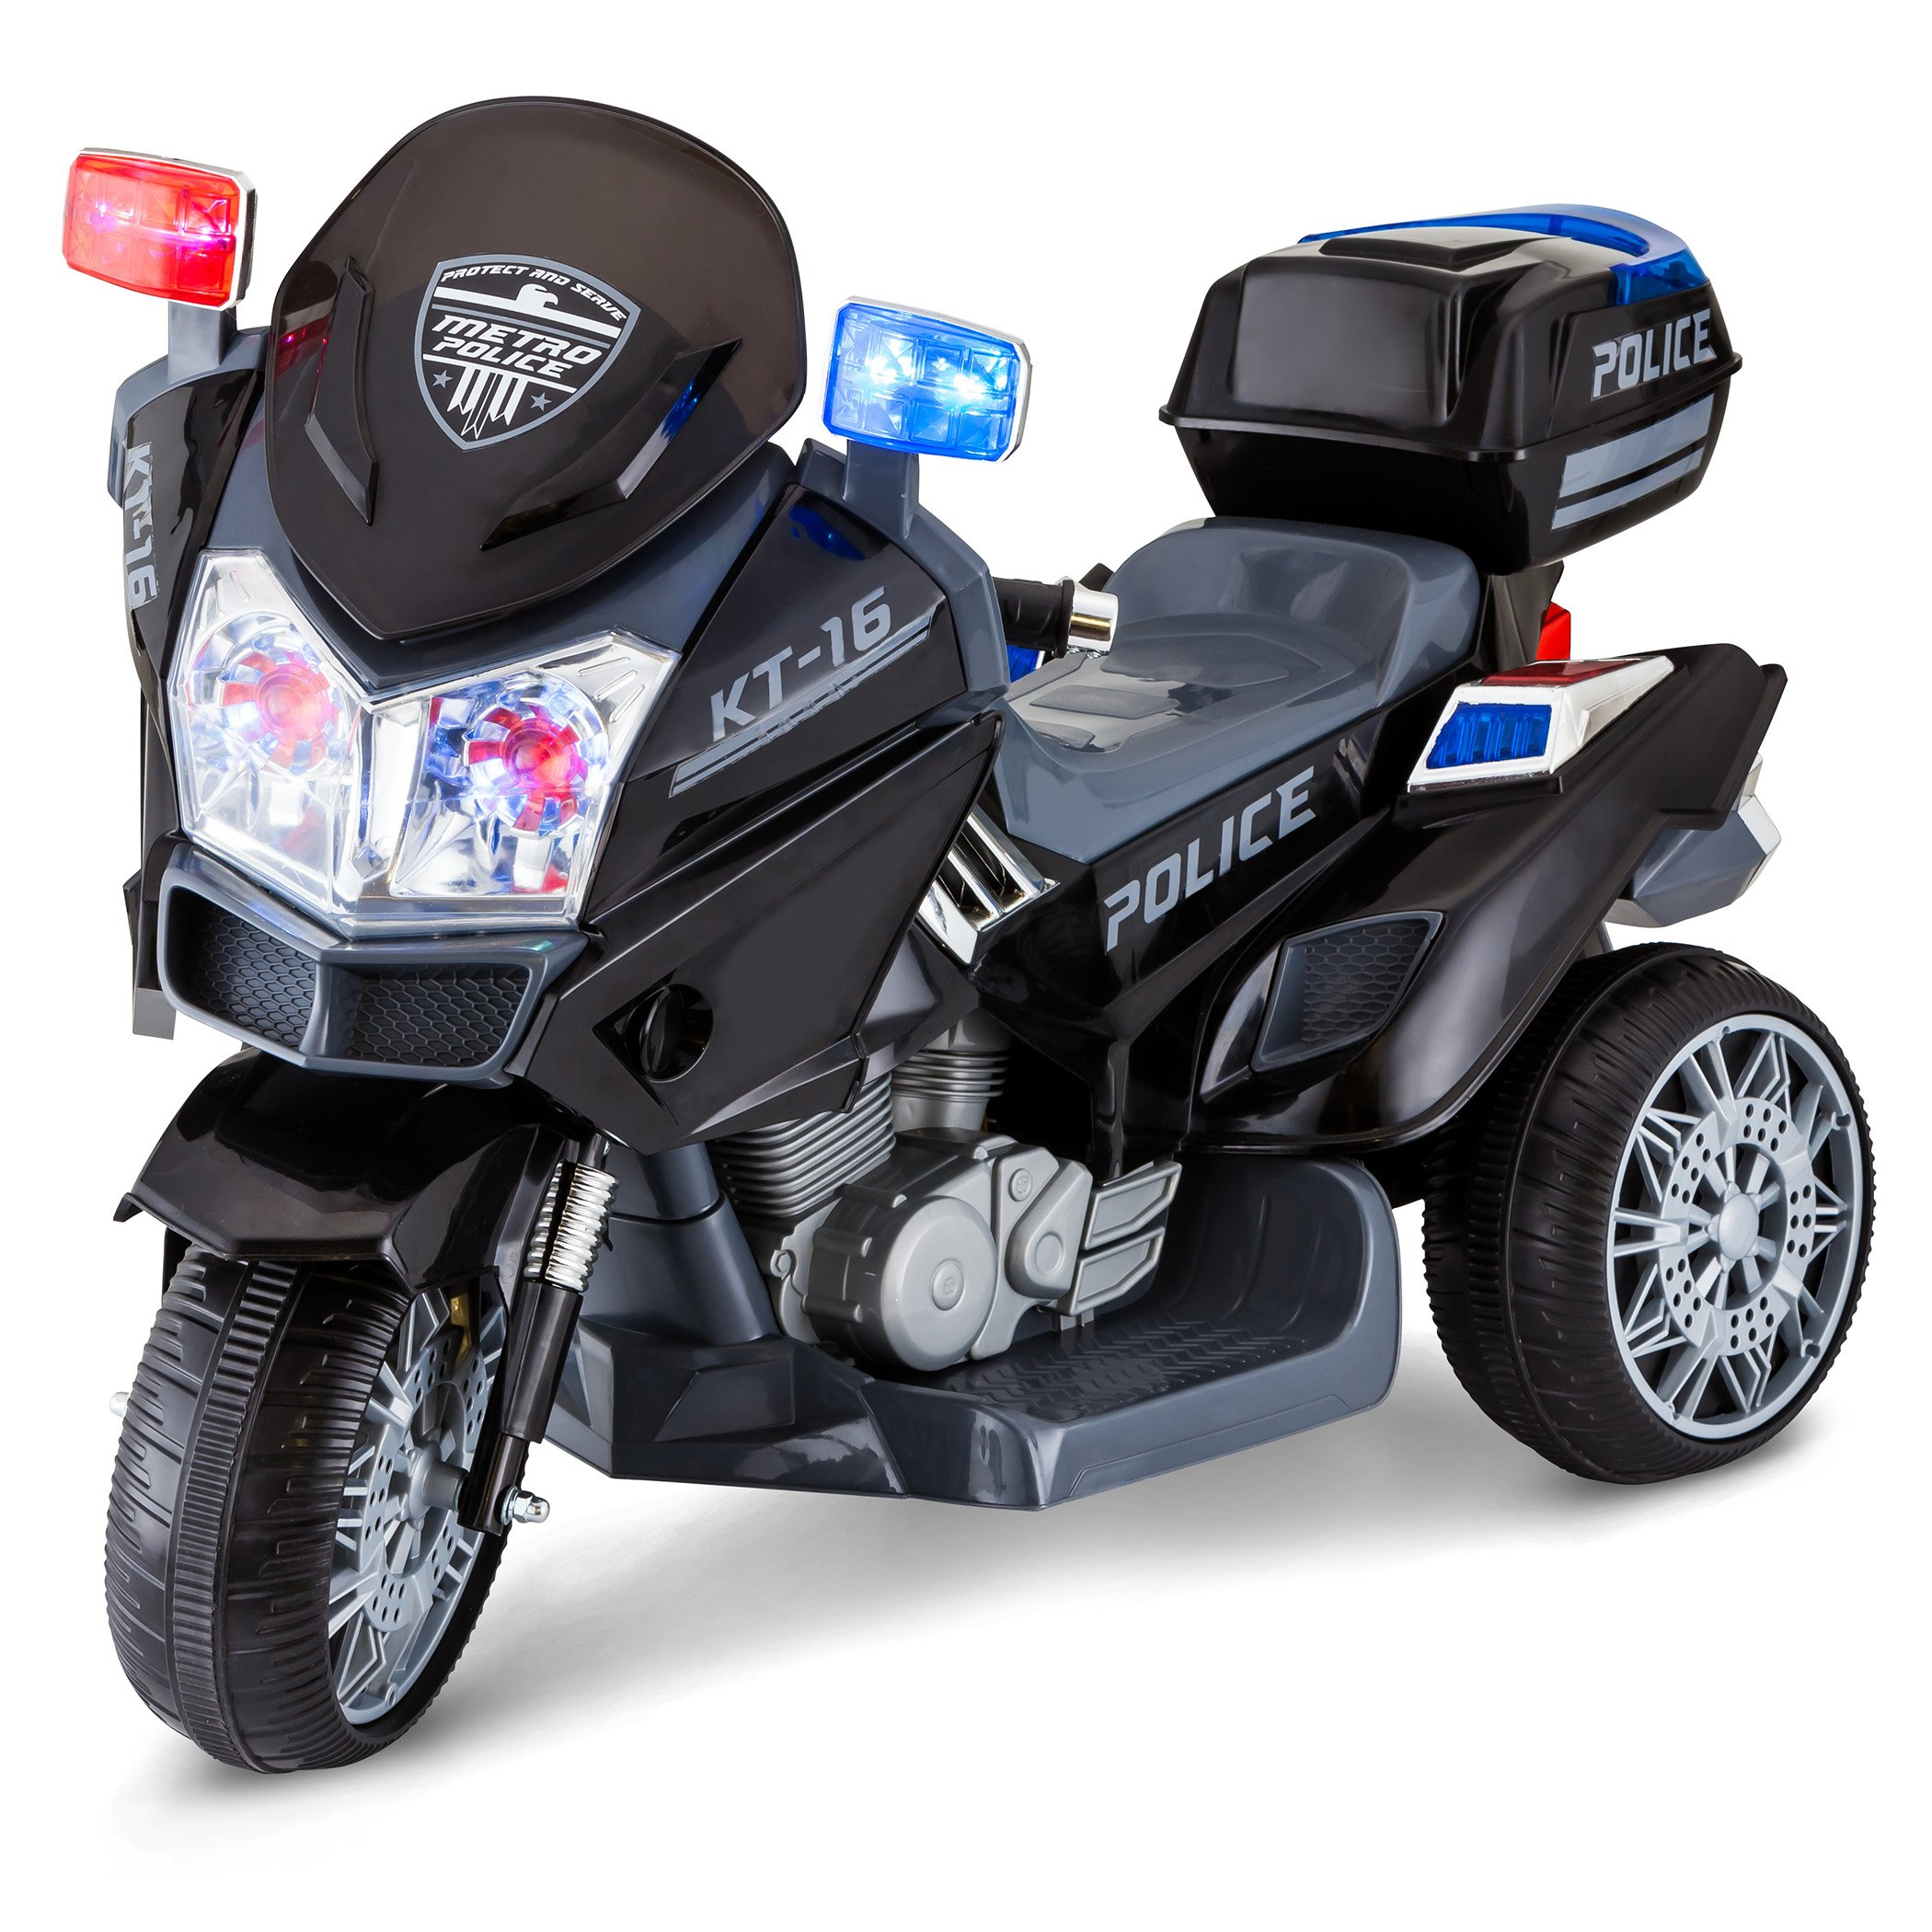 Kid Trax Police Rescue Motorcycle 6V Electric Ride on, Black by Kid Trax